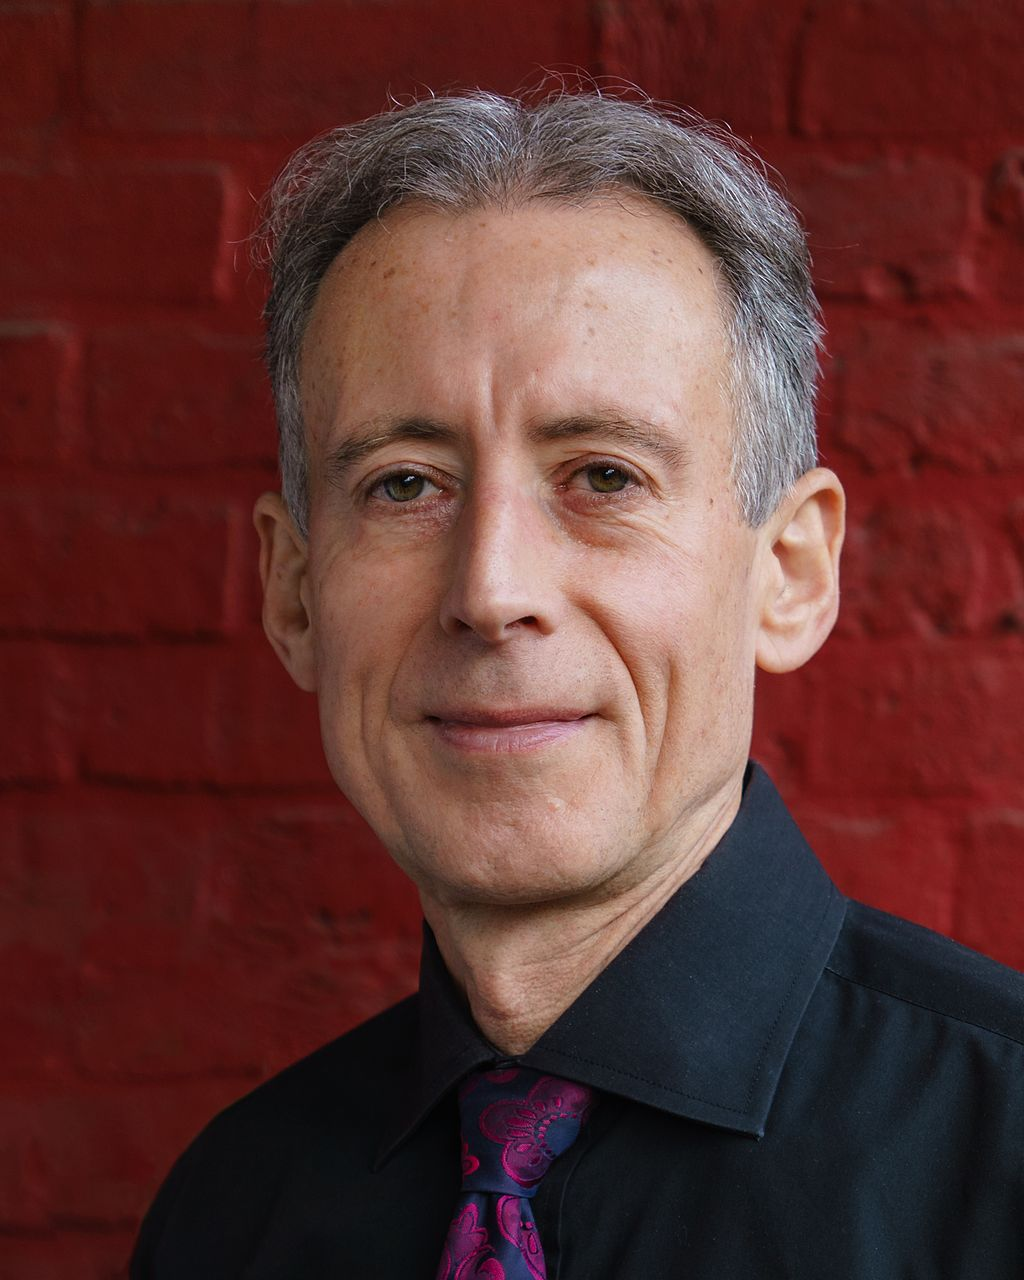 Peter_Tatchell_-_Red_Wall_-_8by10_-_2016-10-15.jpg